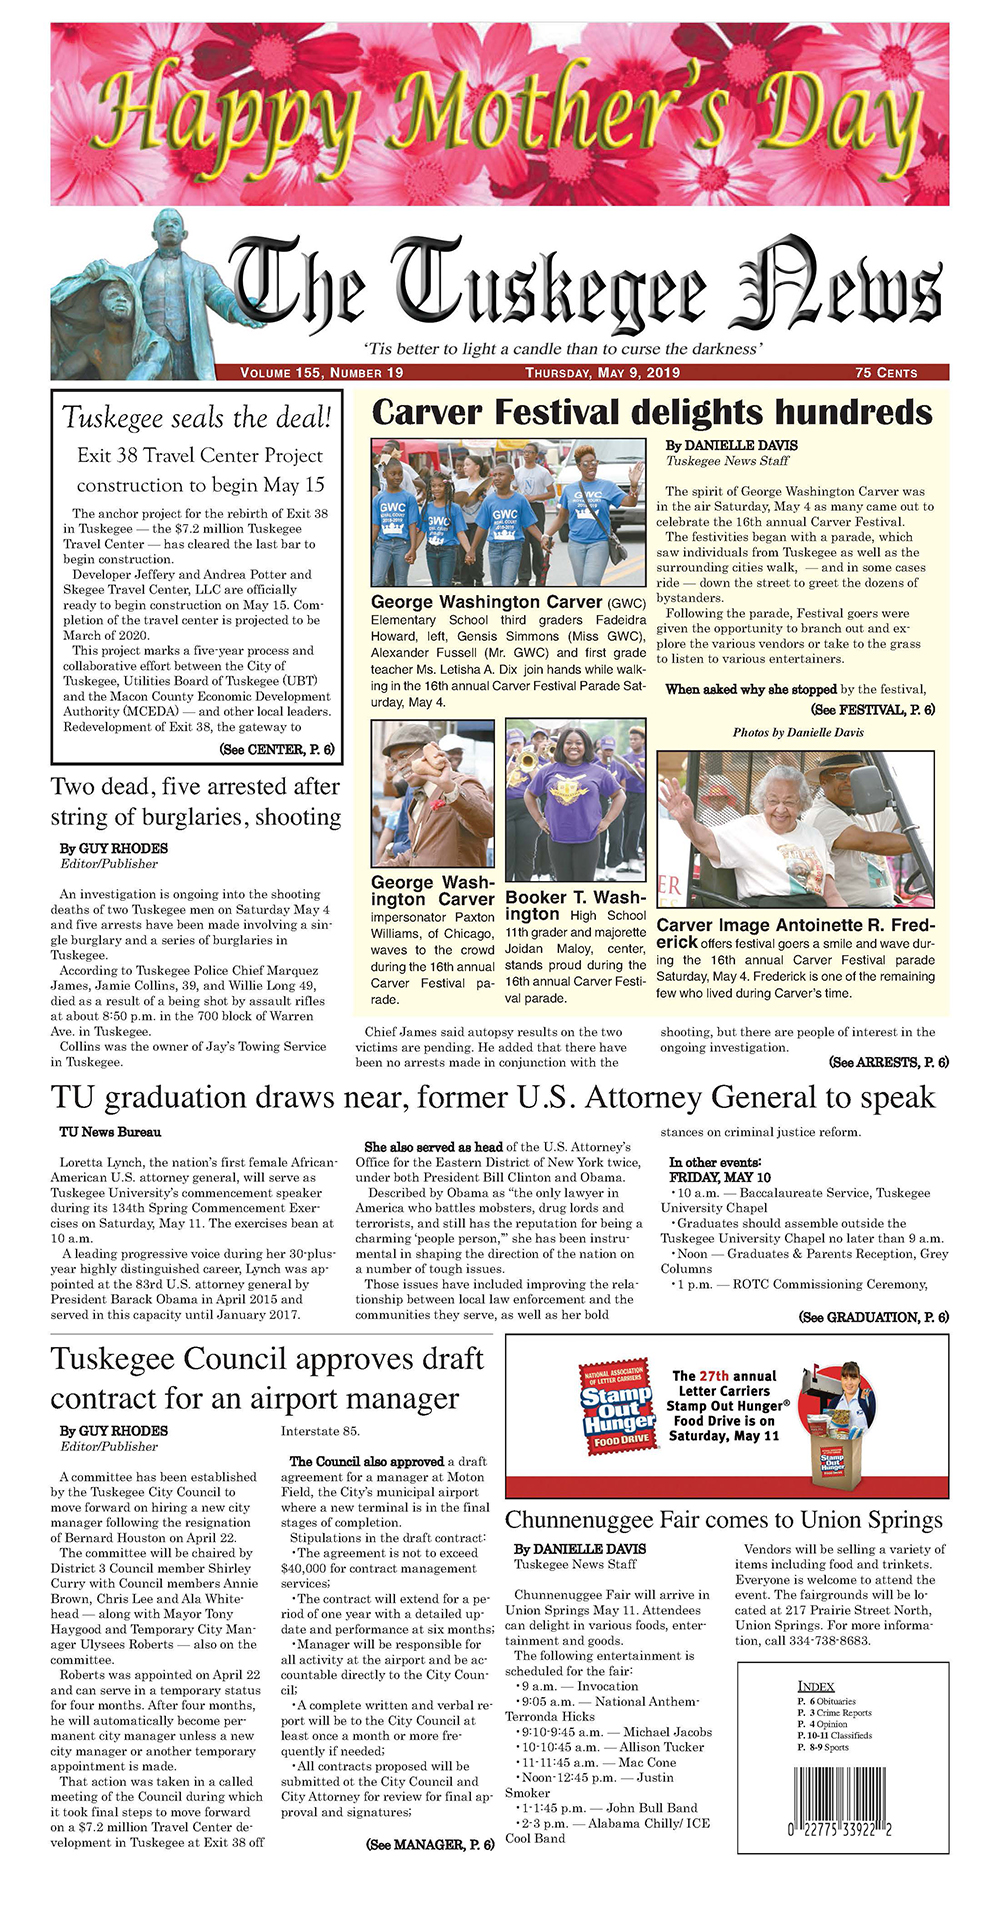 The Tuskegee News - Tuskegee seals the deal!